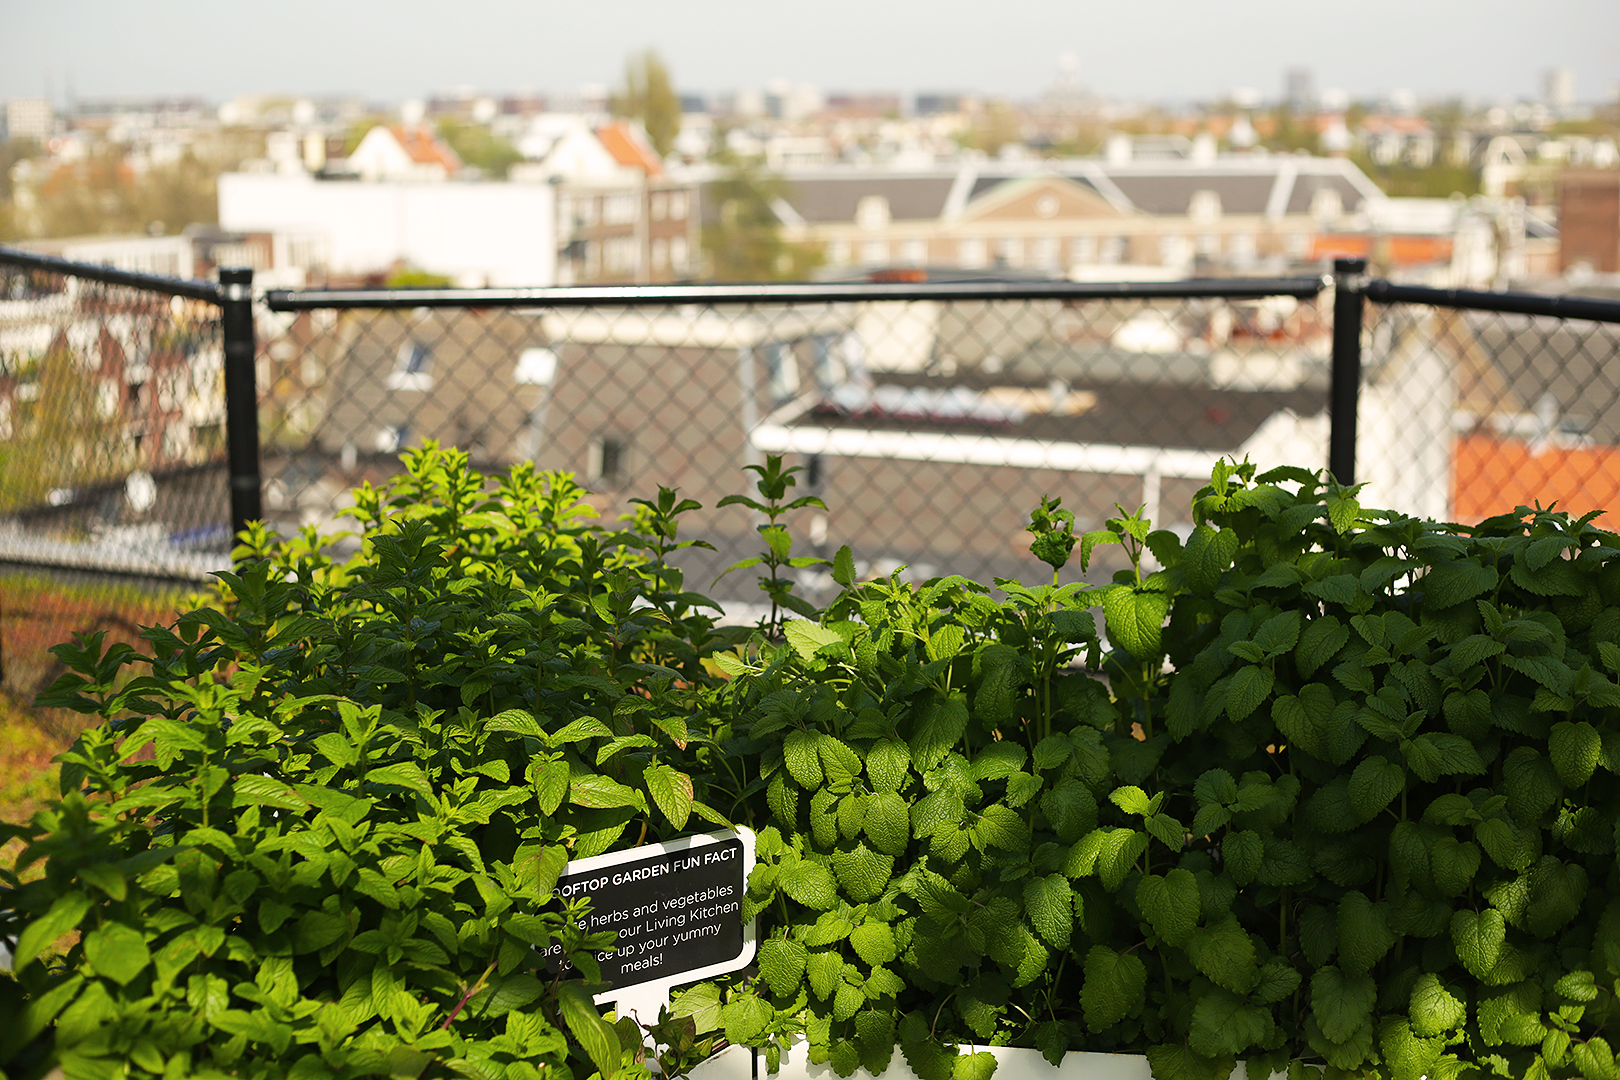 The rooftop garden at Zoku Hotel provides beautiful views and herbs for their kitchen